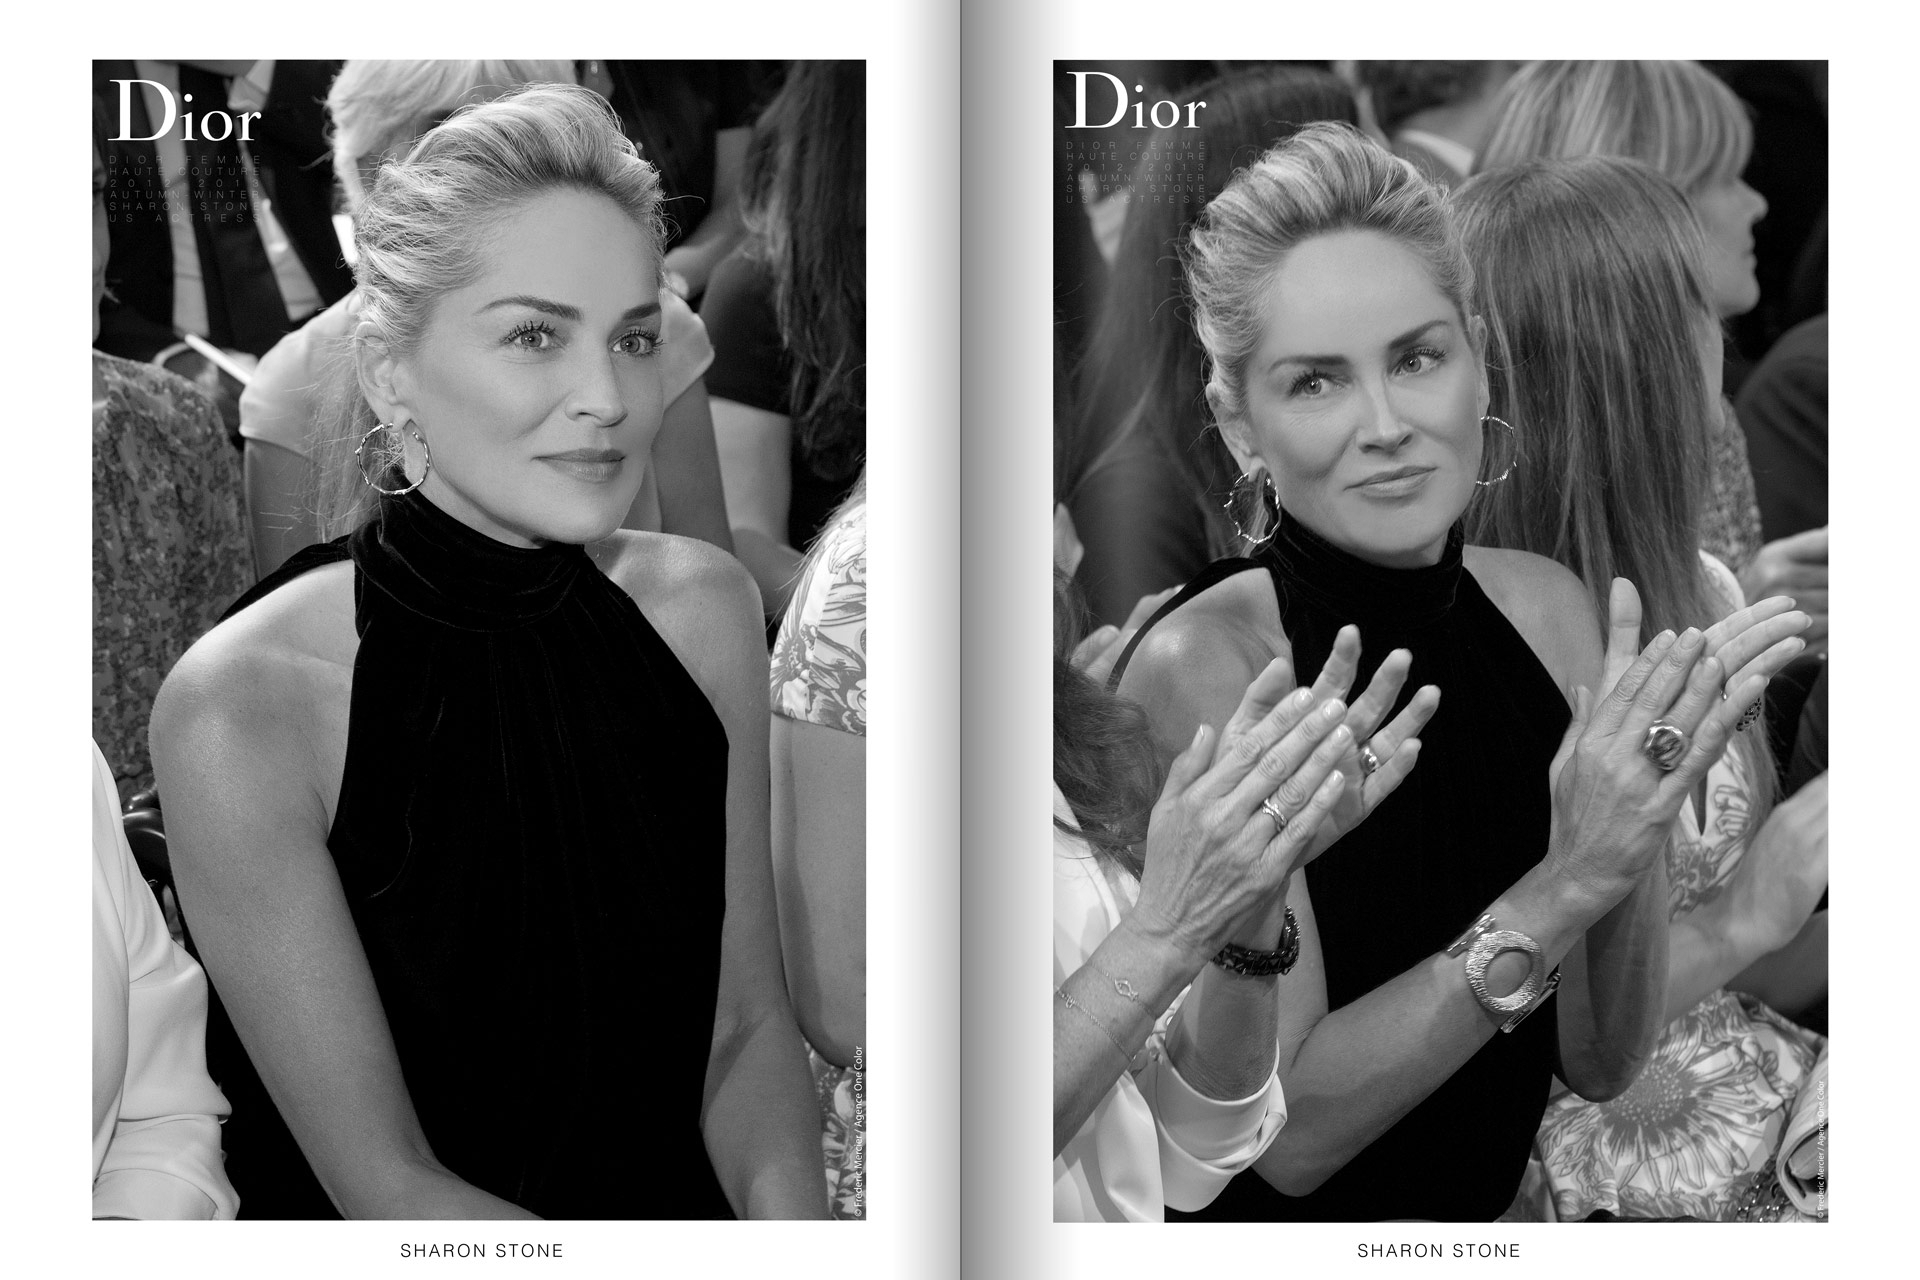 frederic mercier fashion photographer one color portraits people sharon stone for dior